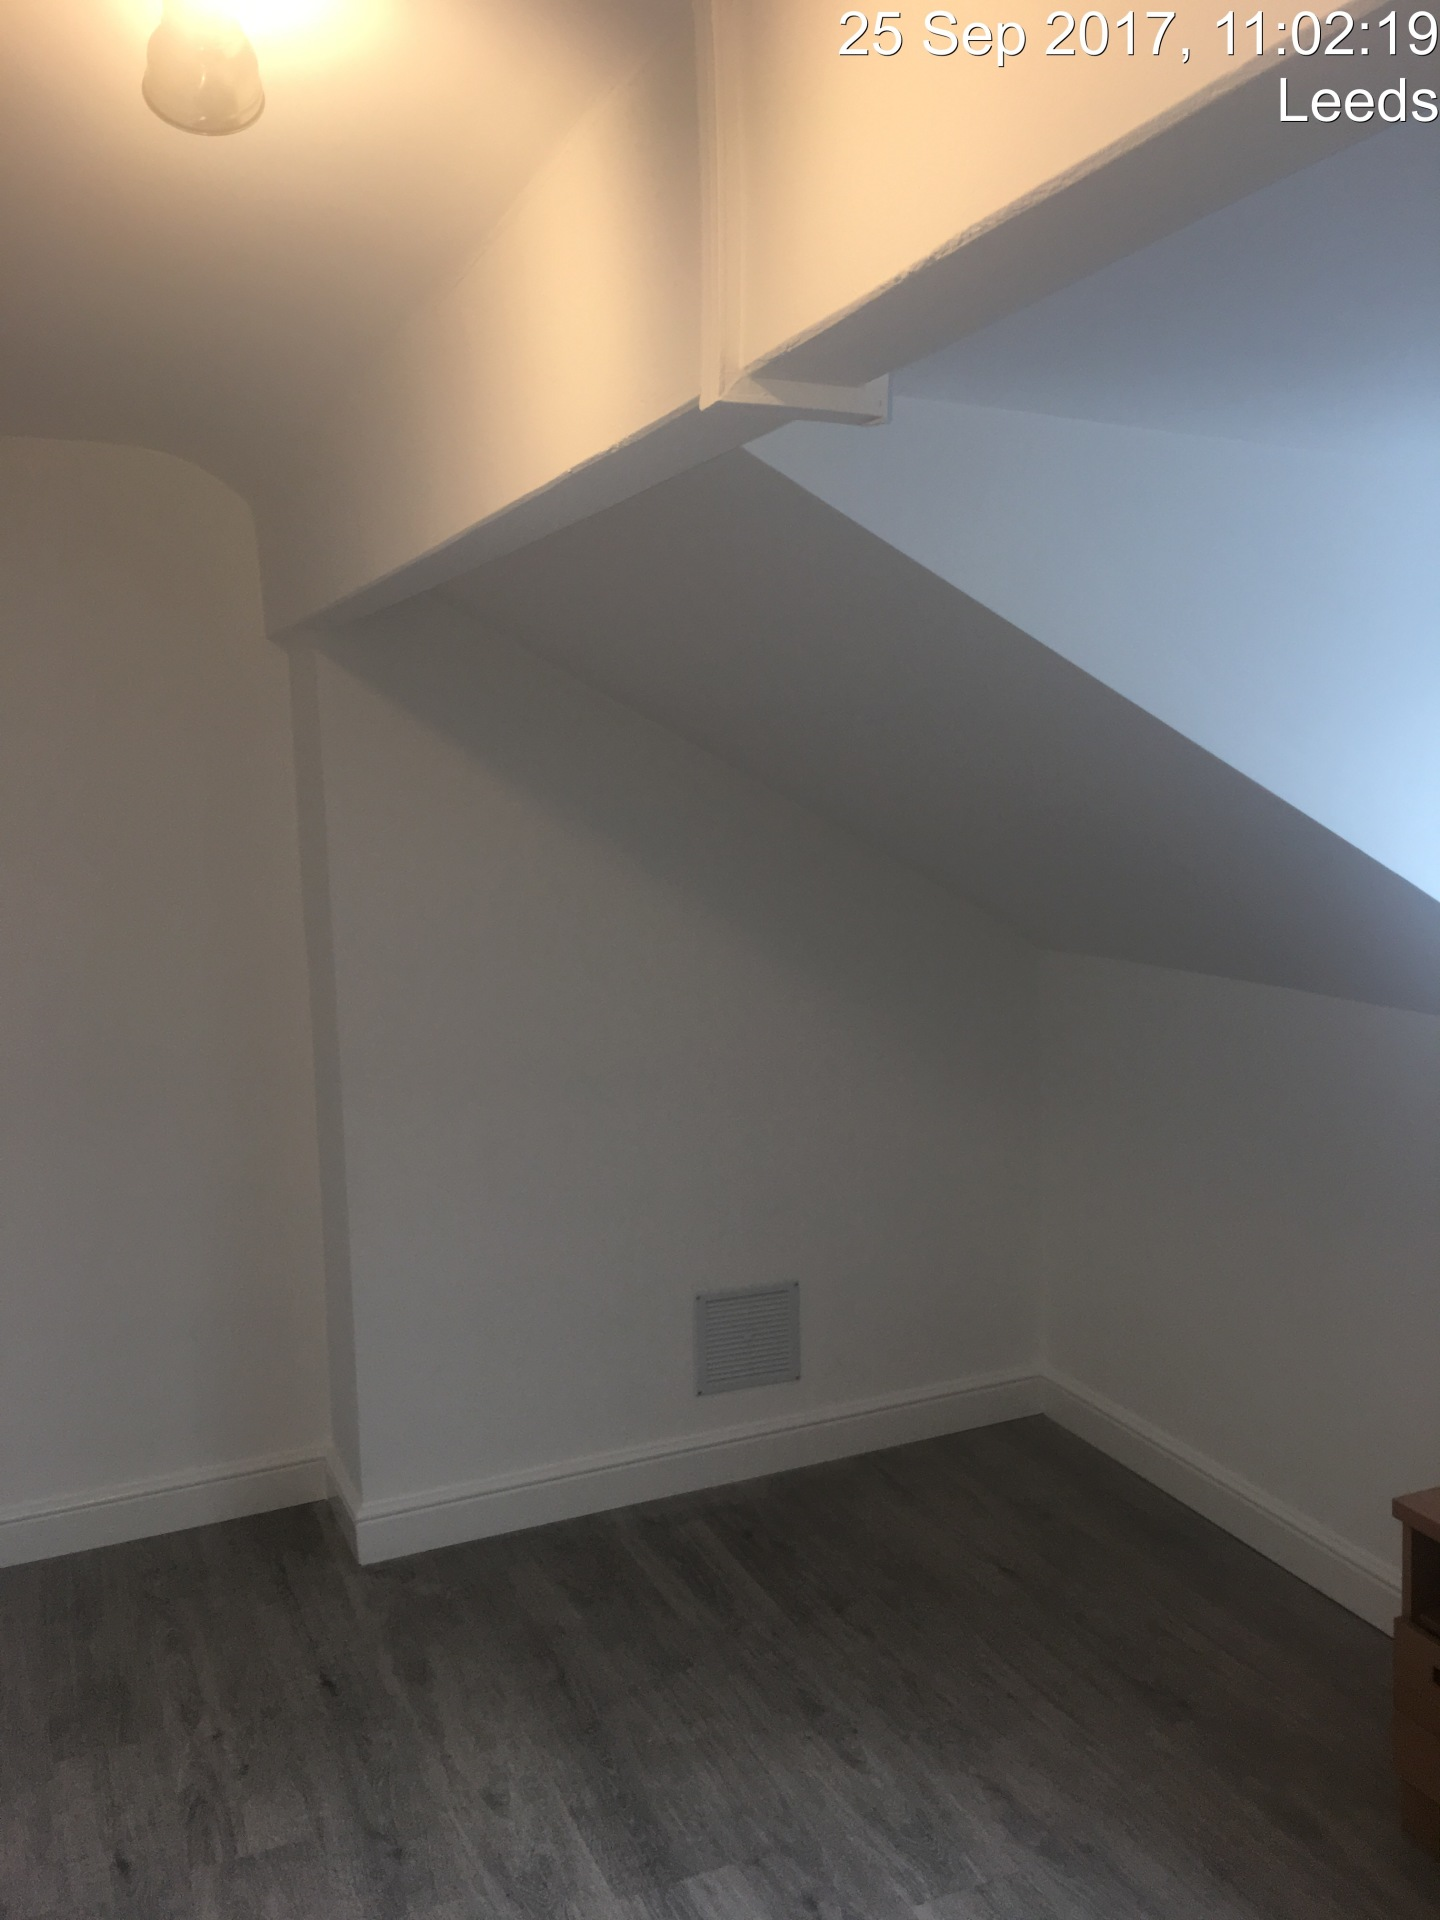 Room in Roof - Leeds